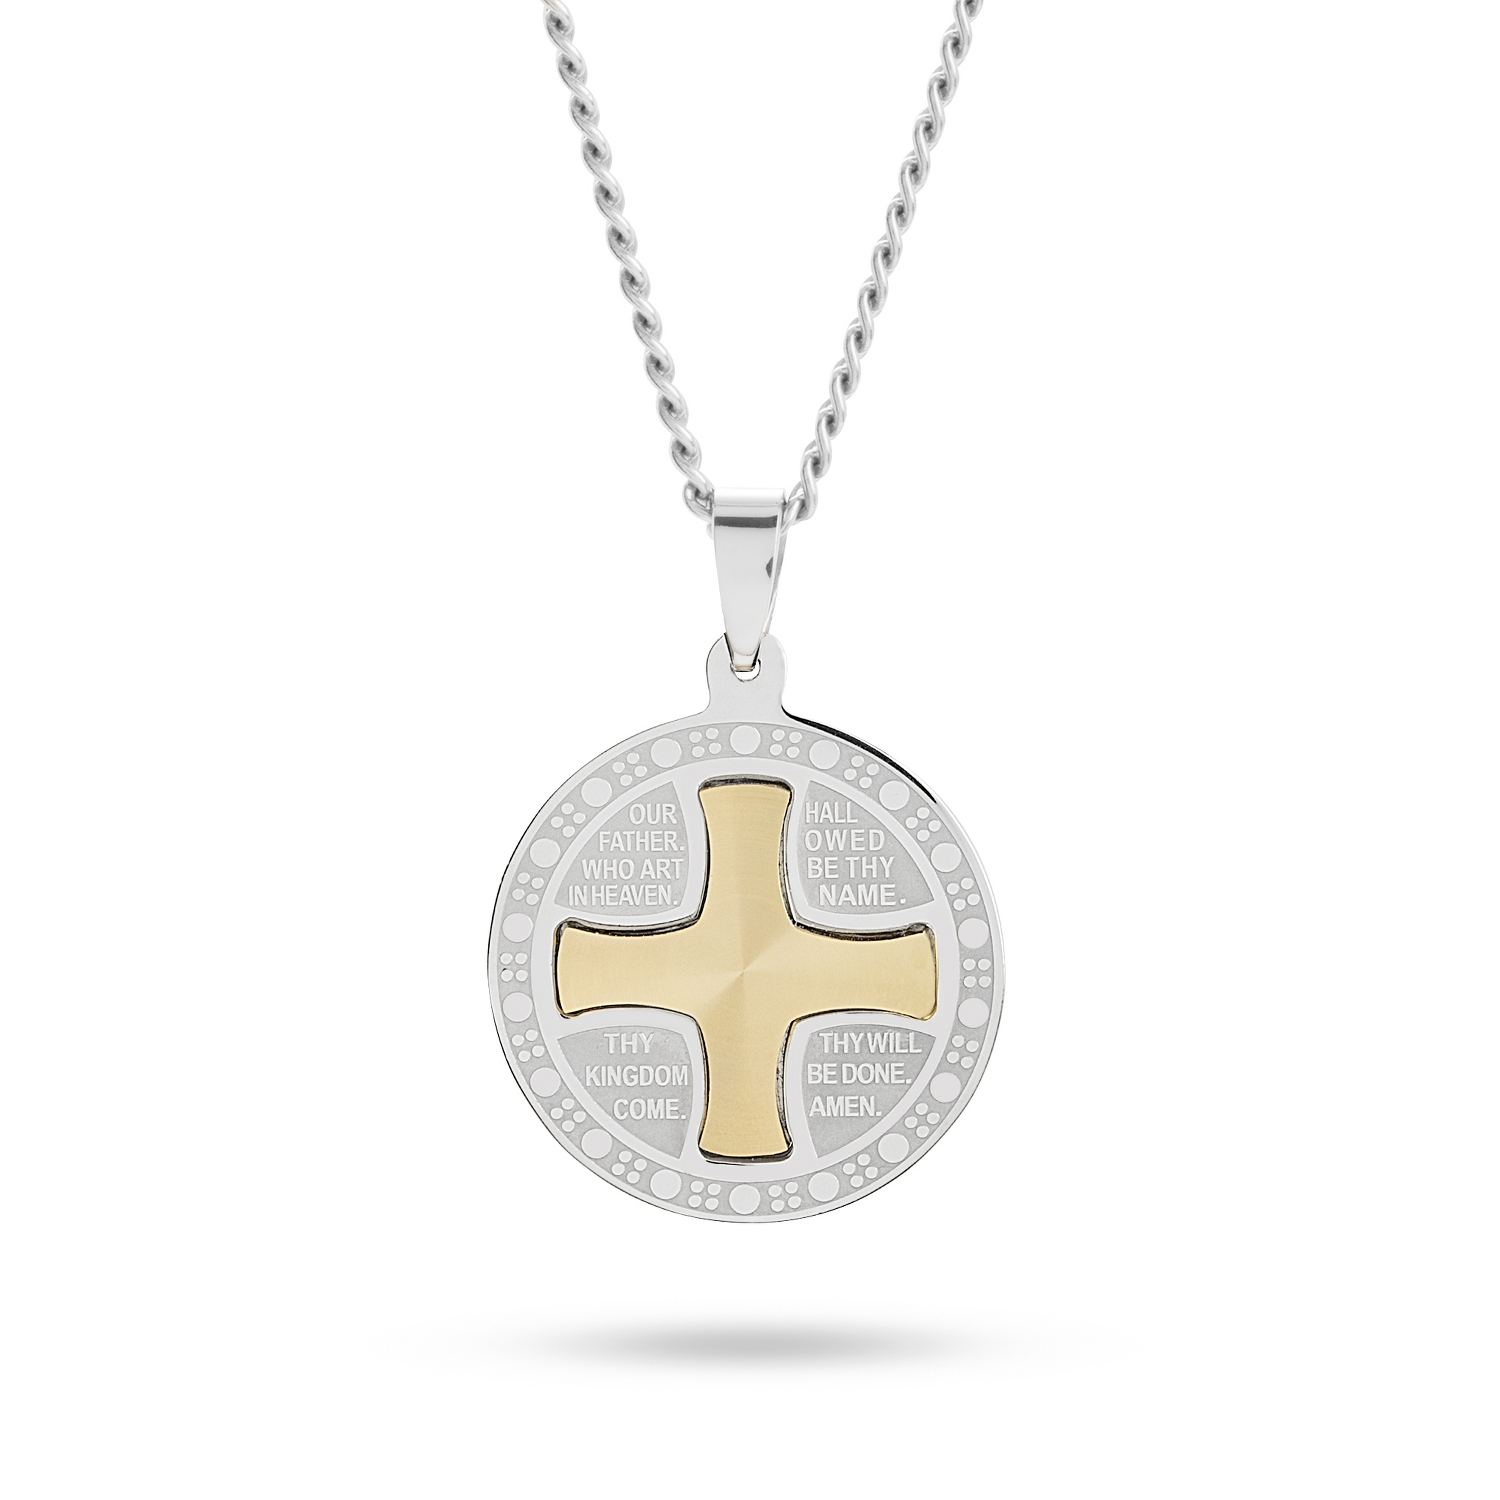 Personalized Our Father Silver and Gold Cross Pendant